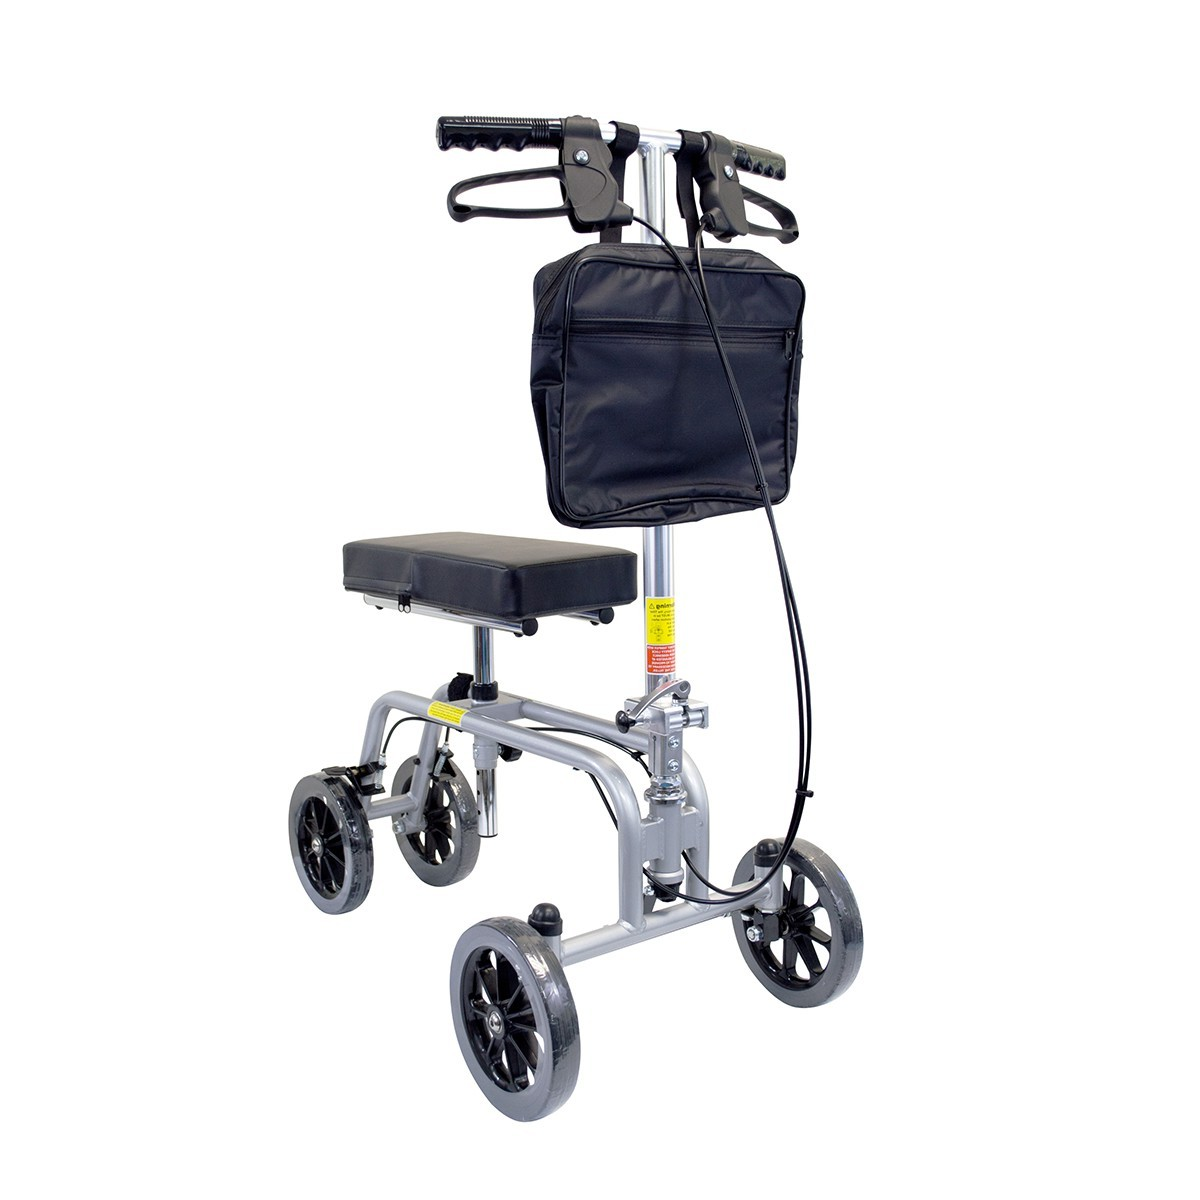 Standard Folding Knee Walker Rental